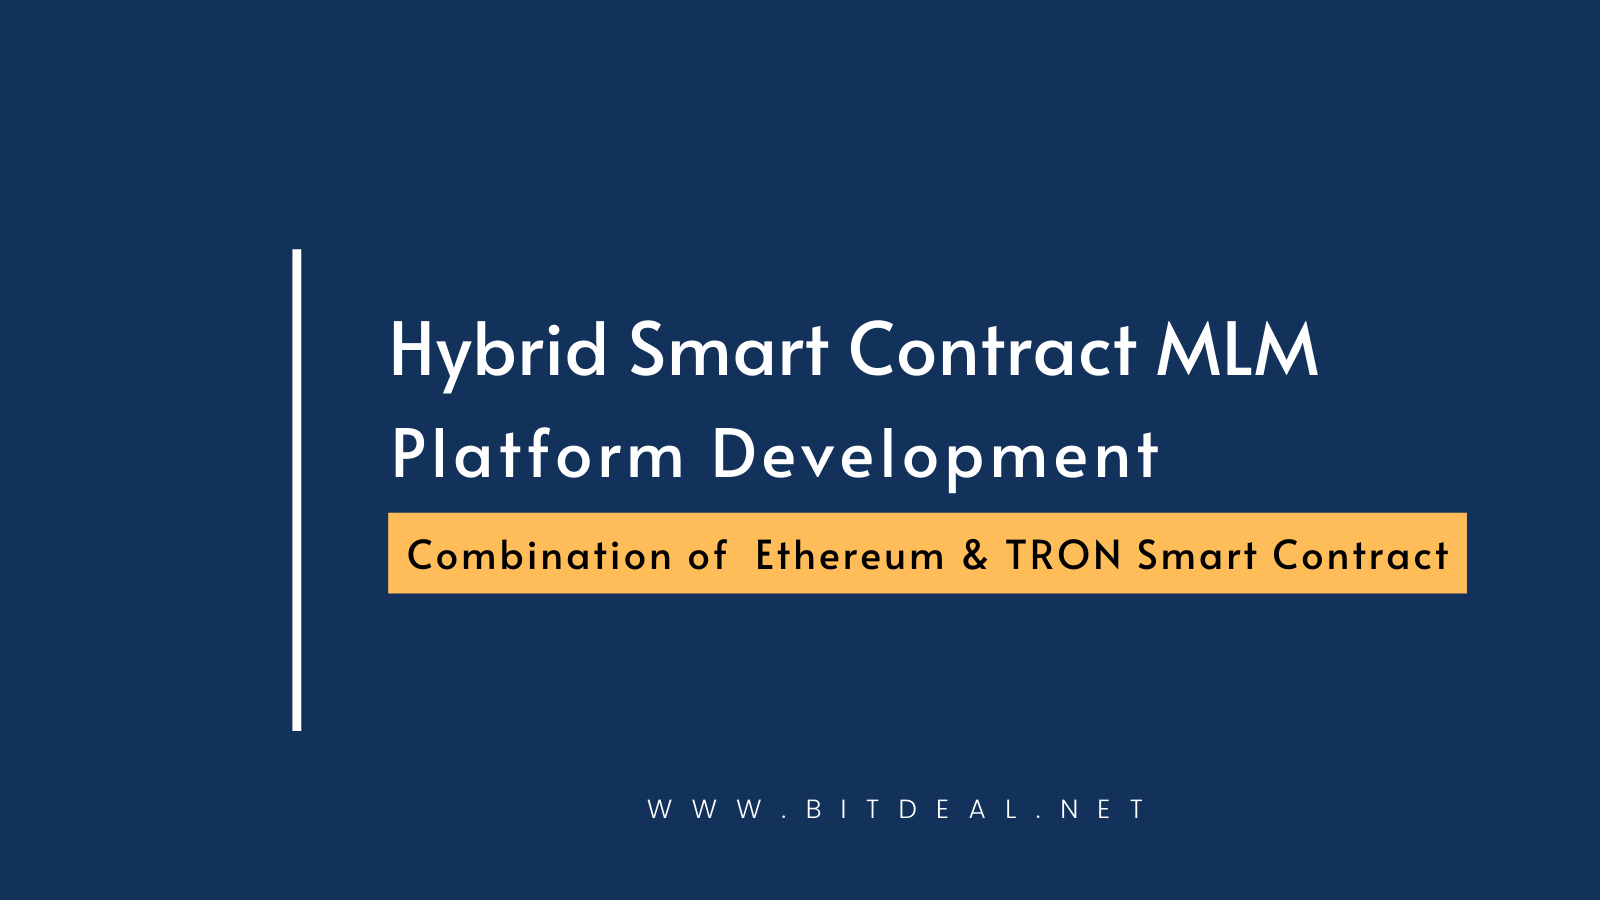 Hybrid Smart Contract Based MLM Platform Development on Ethereum & TRON